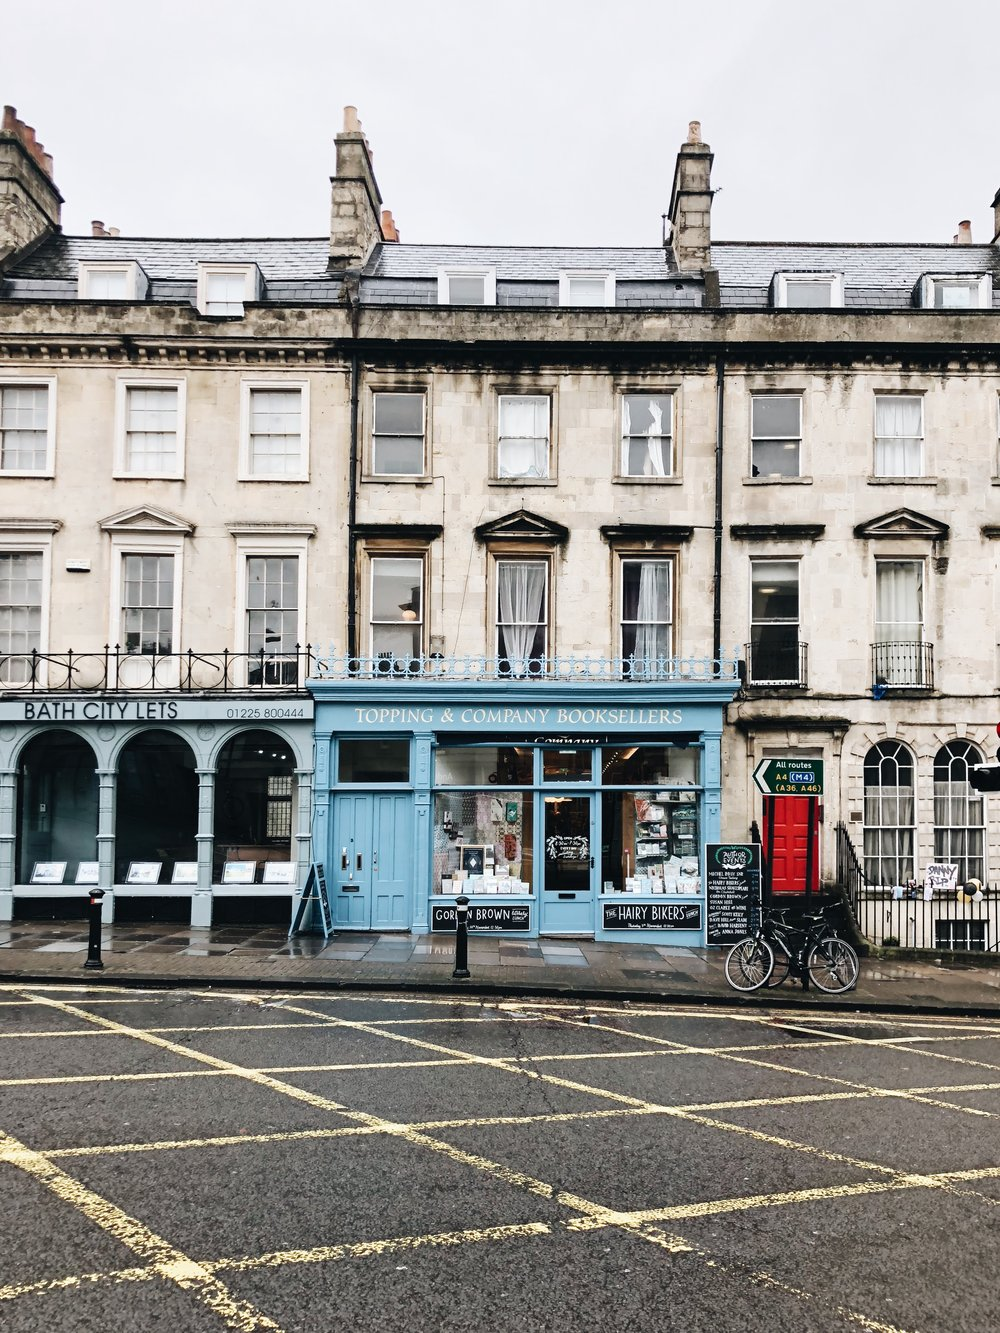 Topping & Company Booksellers | Bath, England | Sea of Atlas